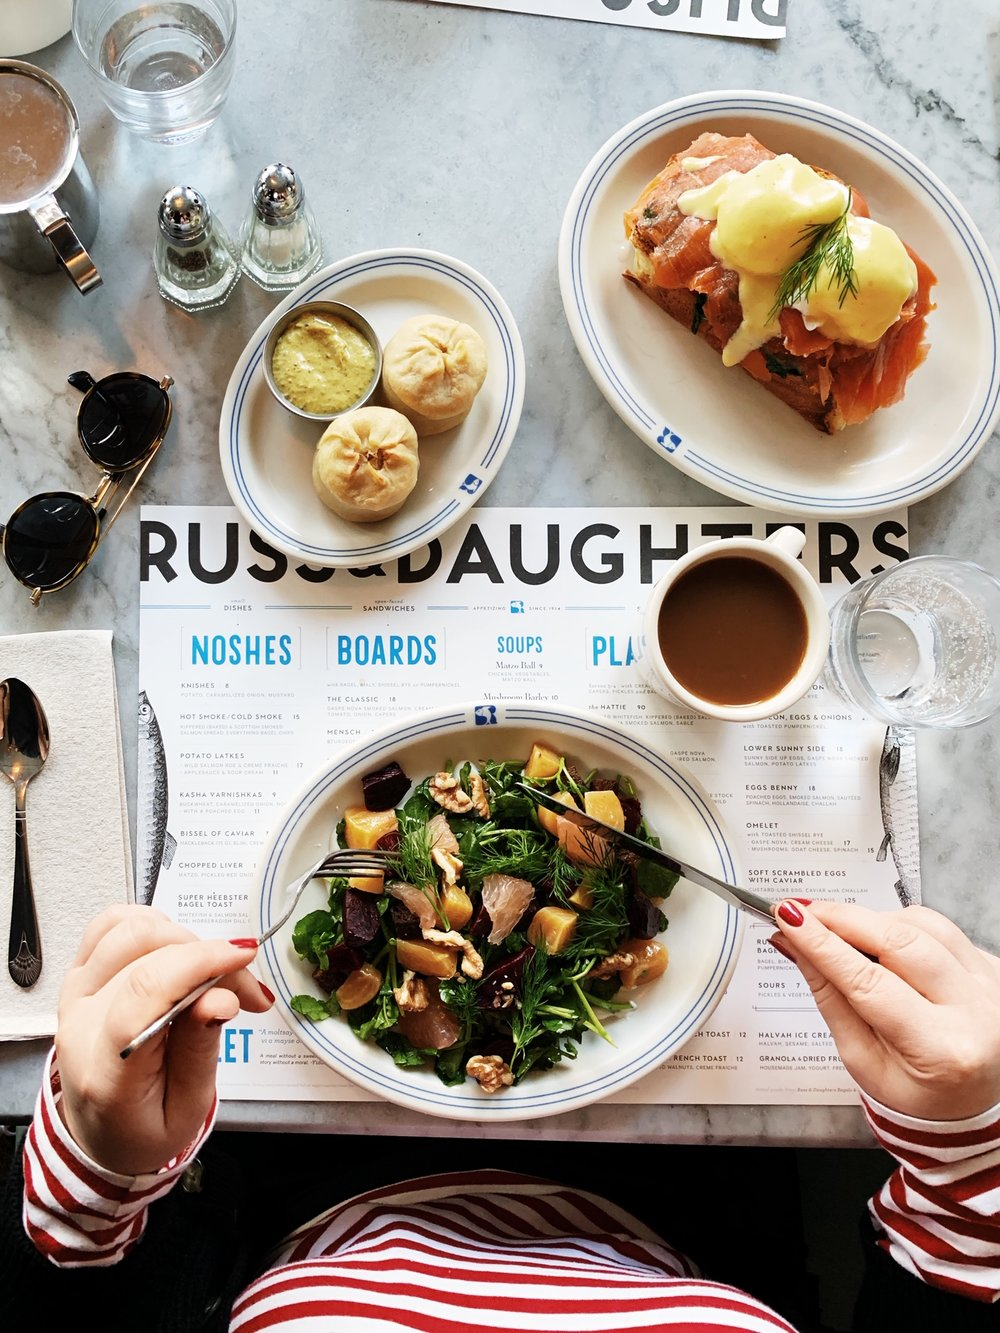 Russ & Daughters | 127 Orchard Street